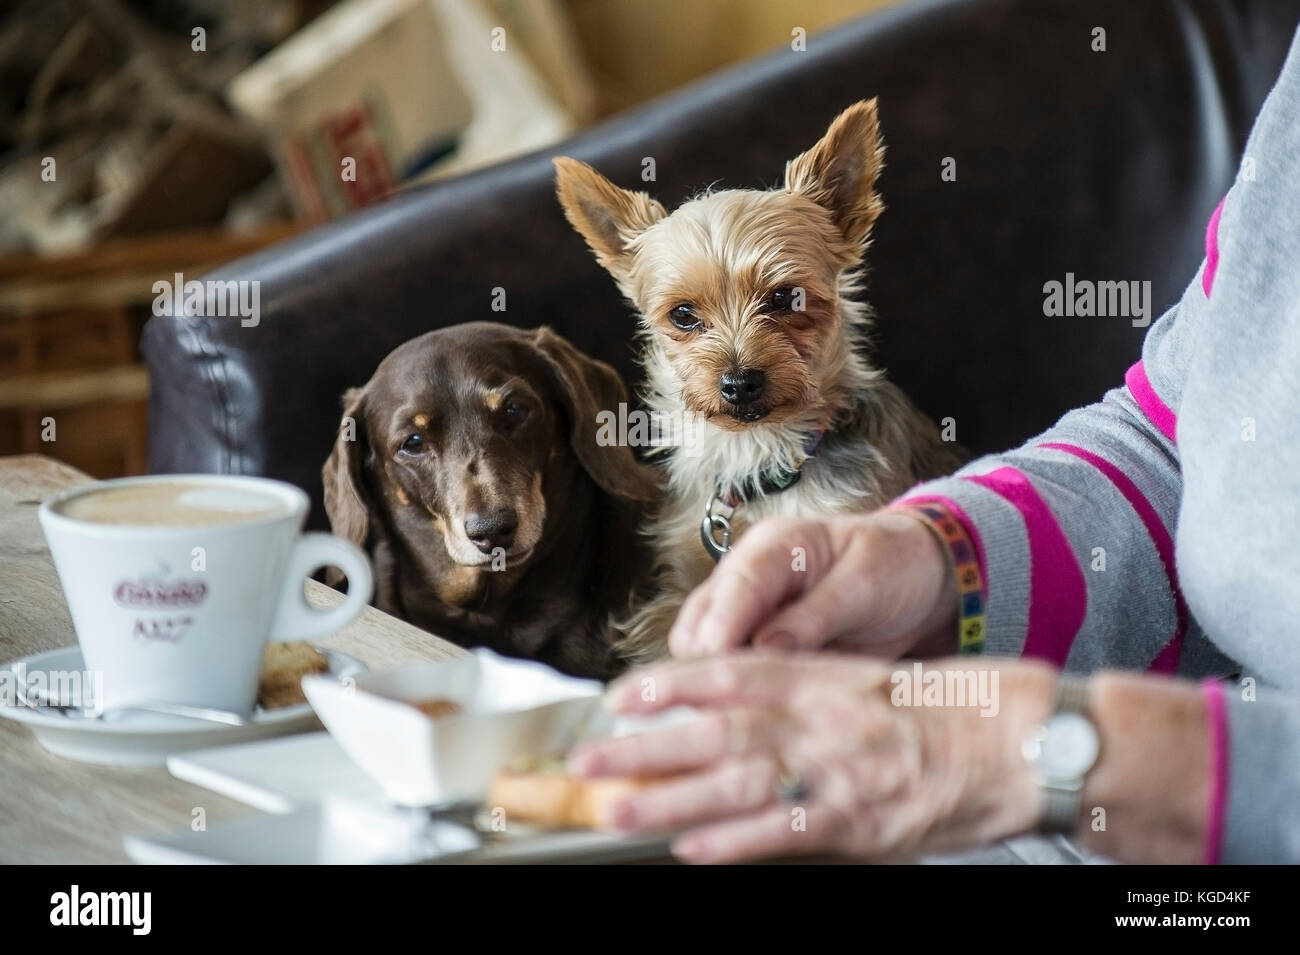 Two small dogs watching their owner eating. - Stock Image